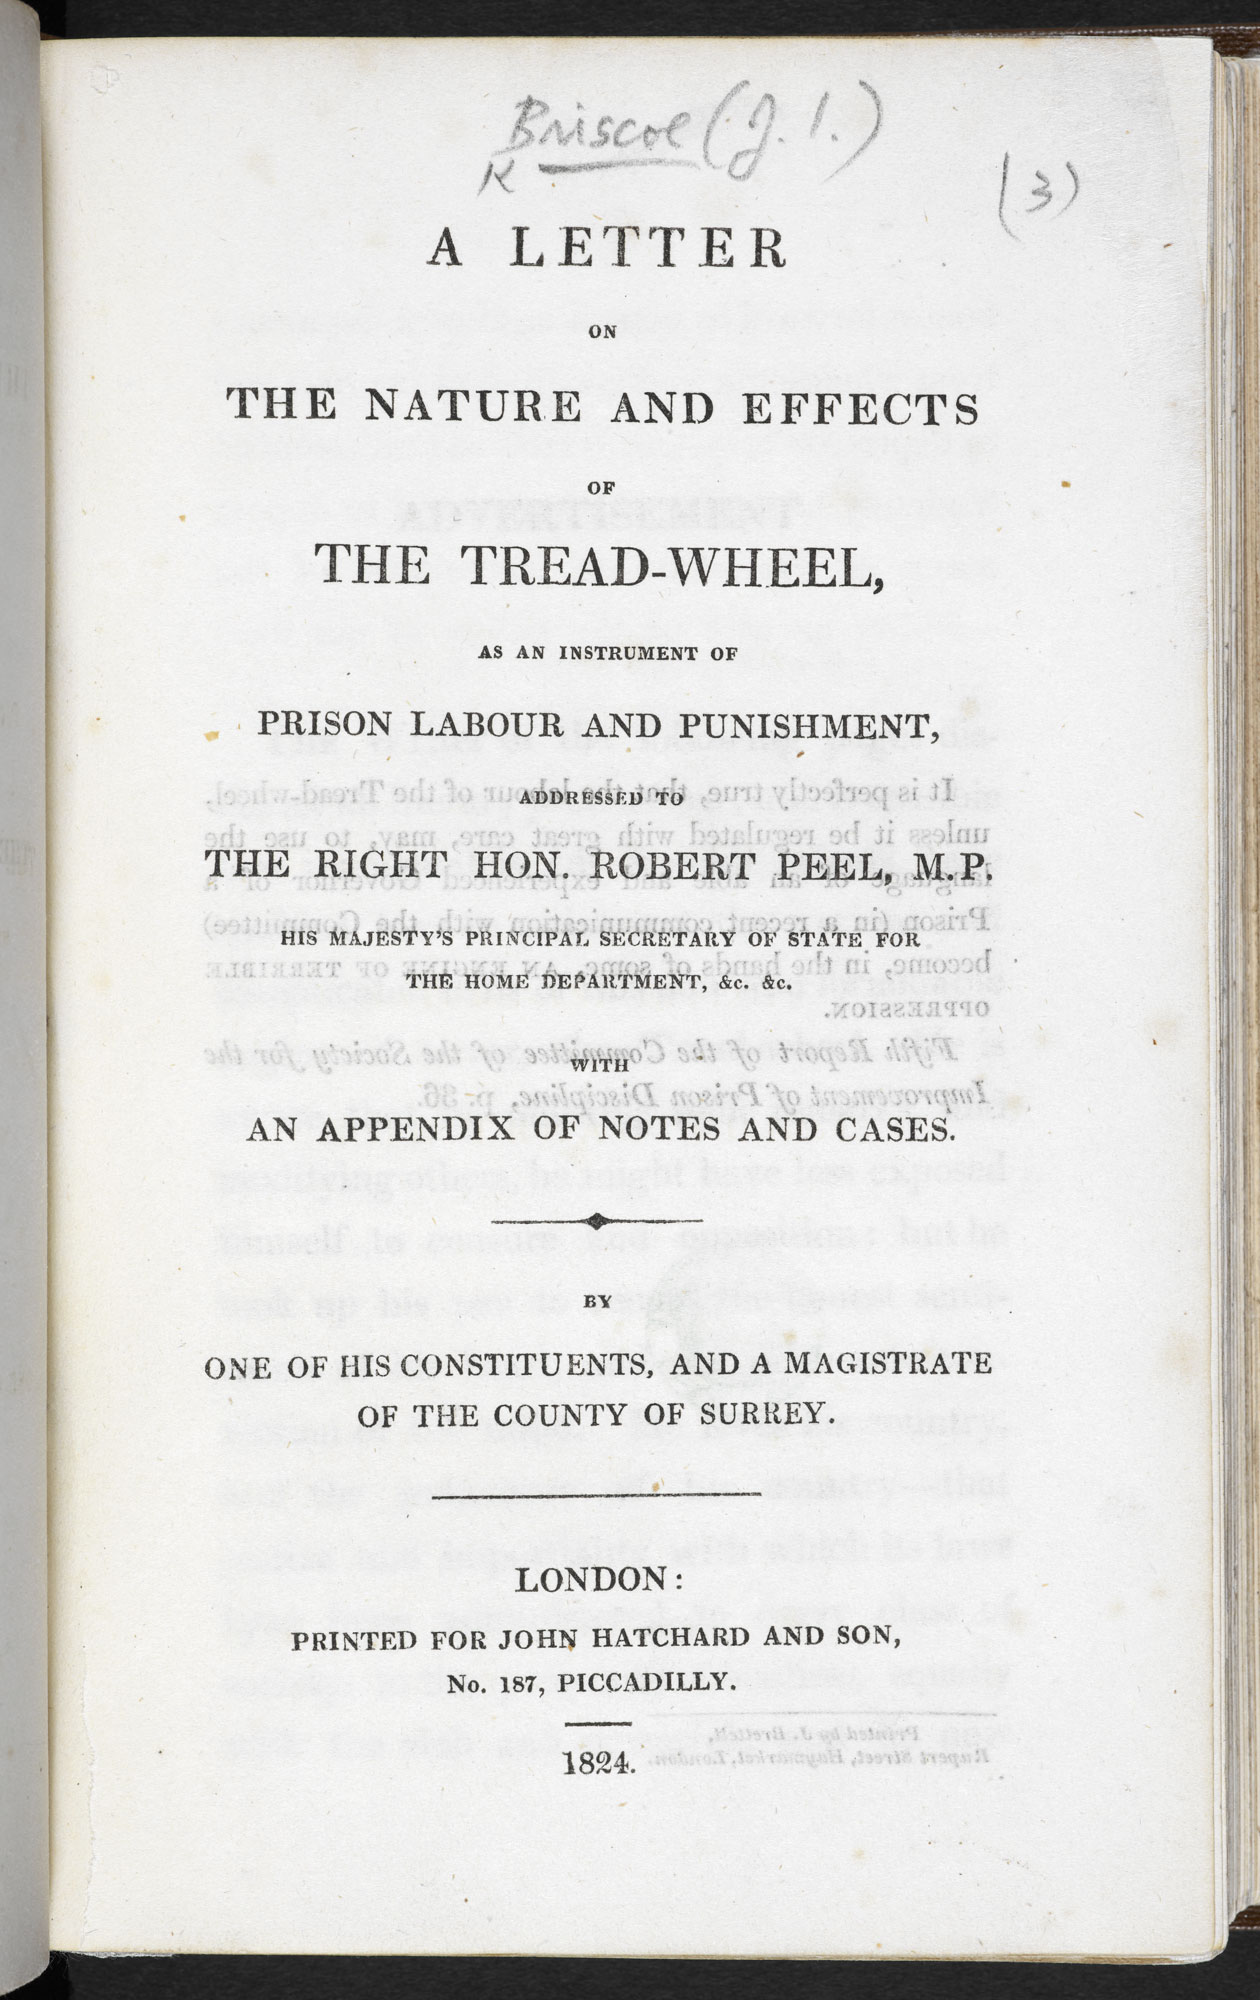 A Letter on the Nature and Effects of the Tread-Wheel [page: title page]